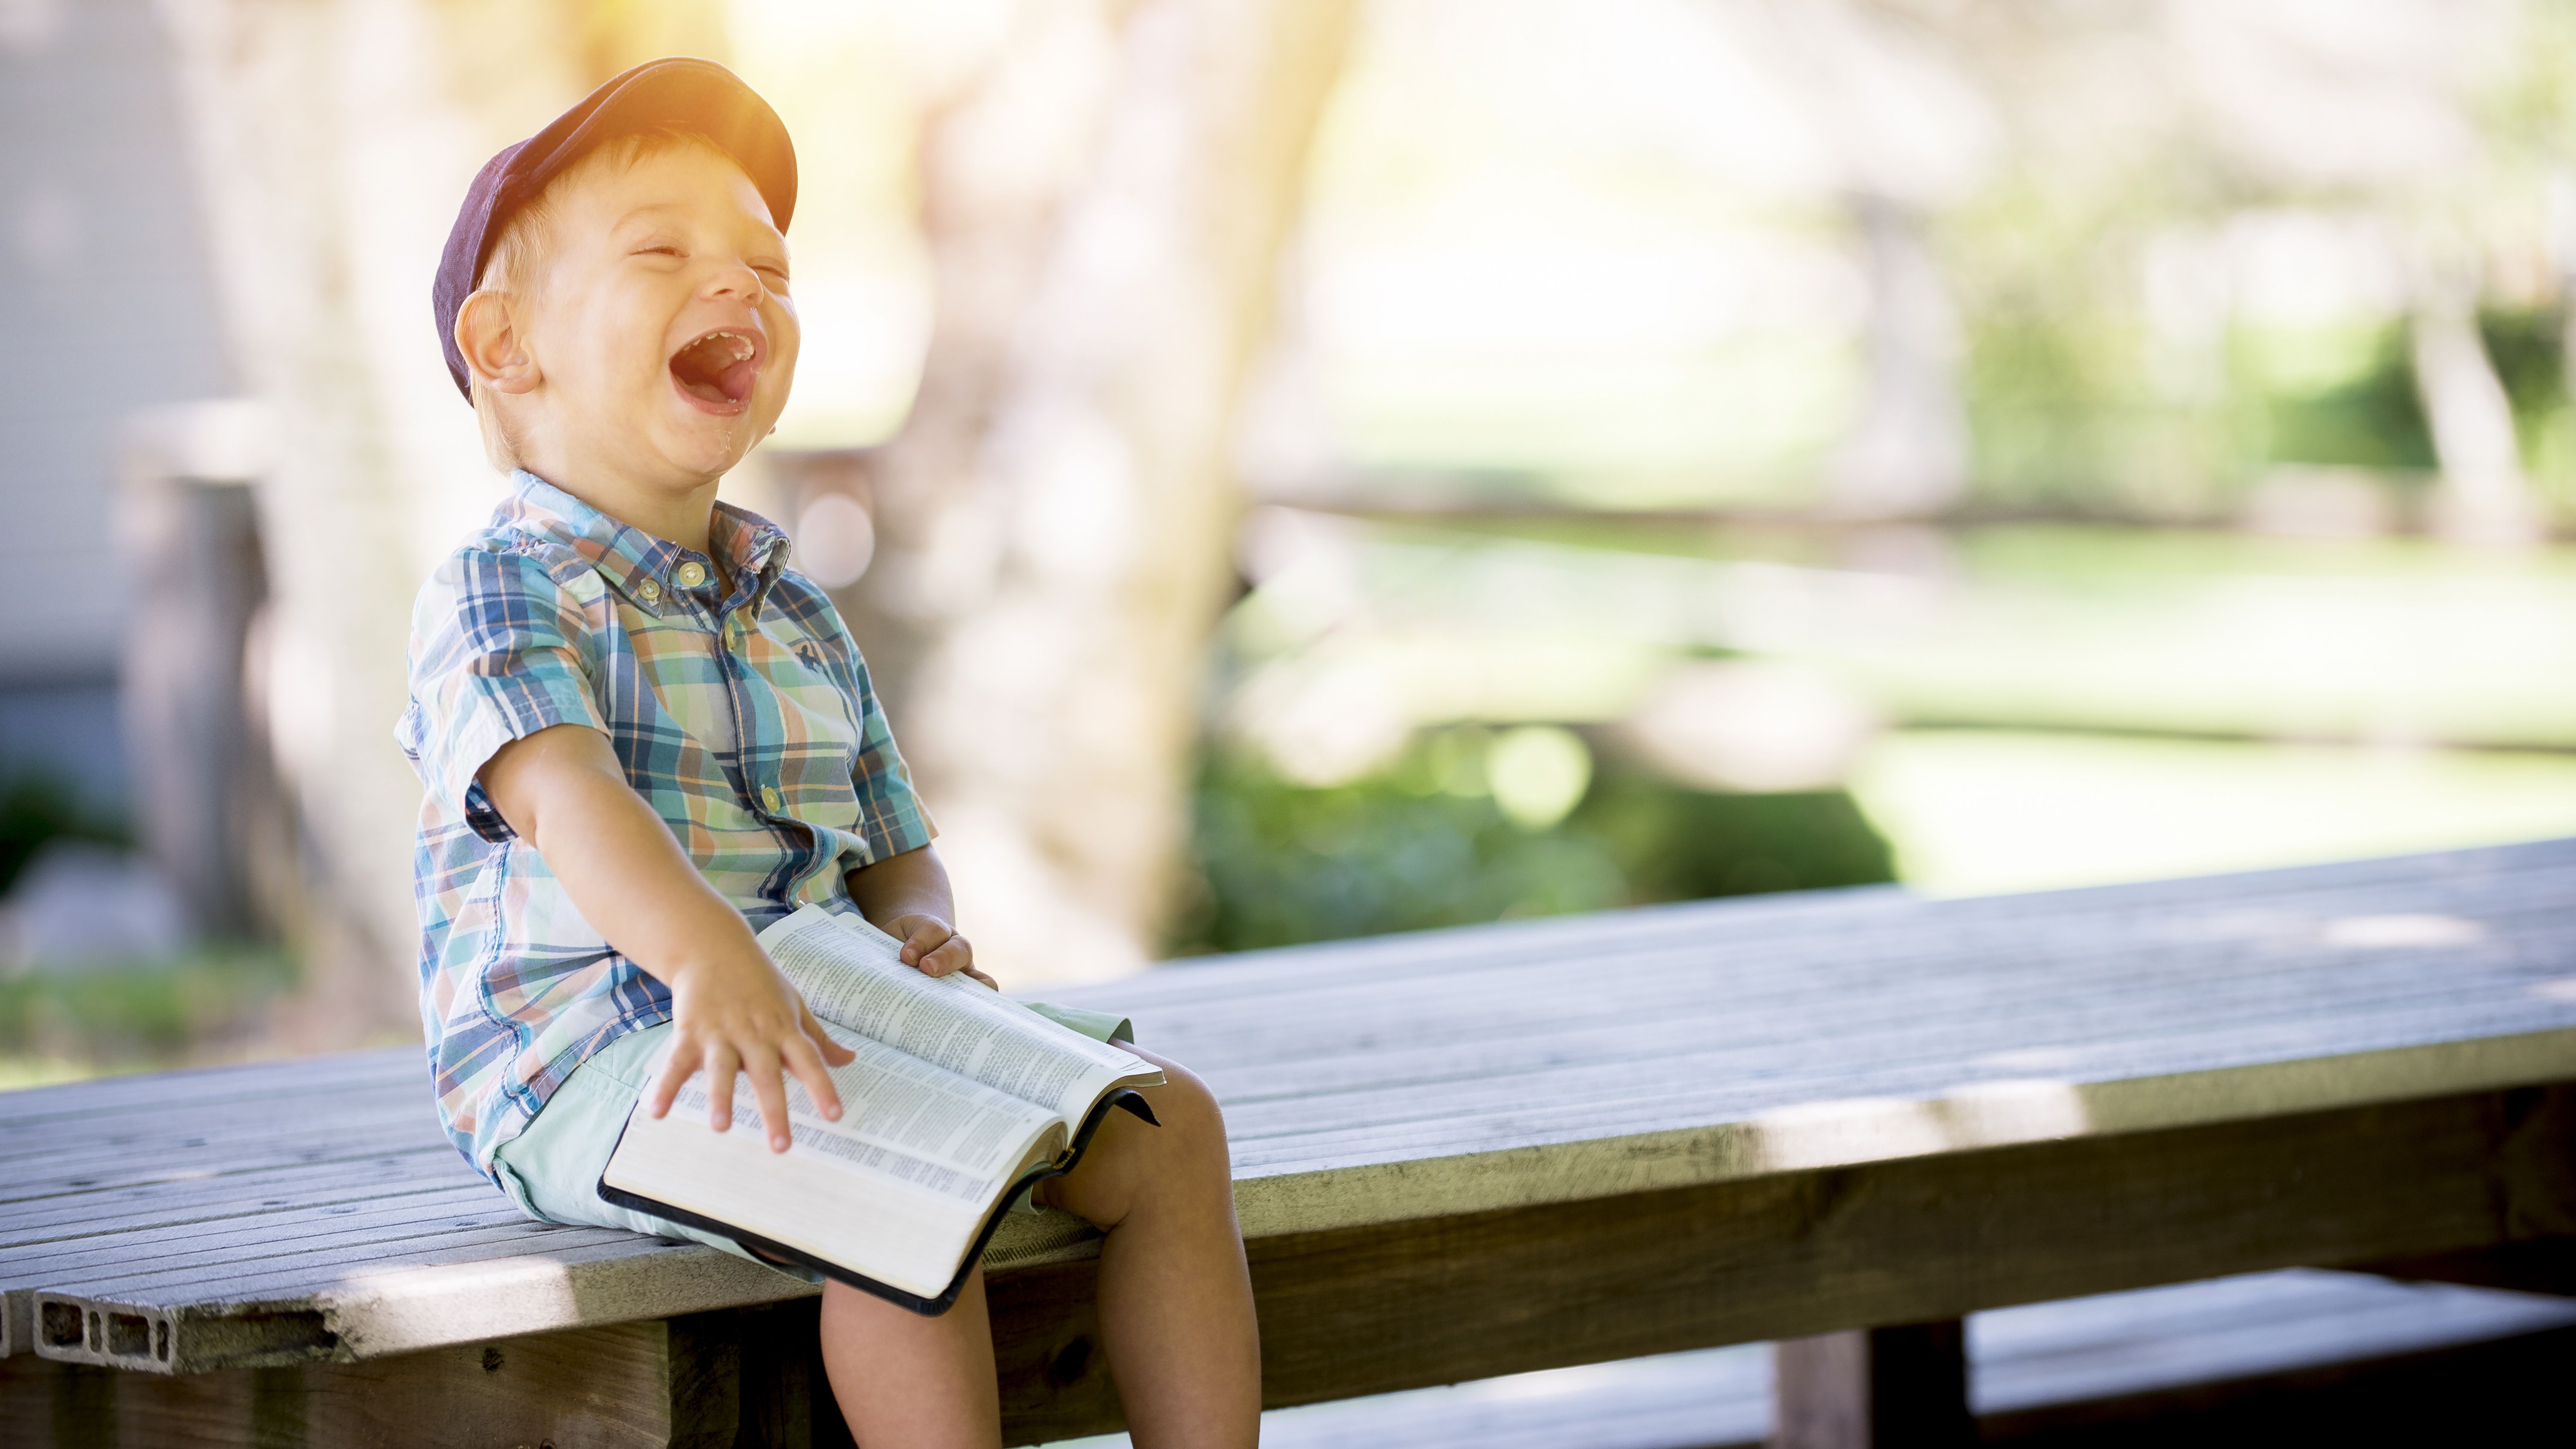 laughing-child-with-book-edit